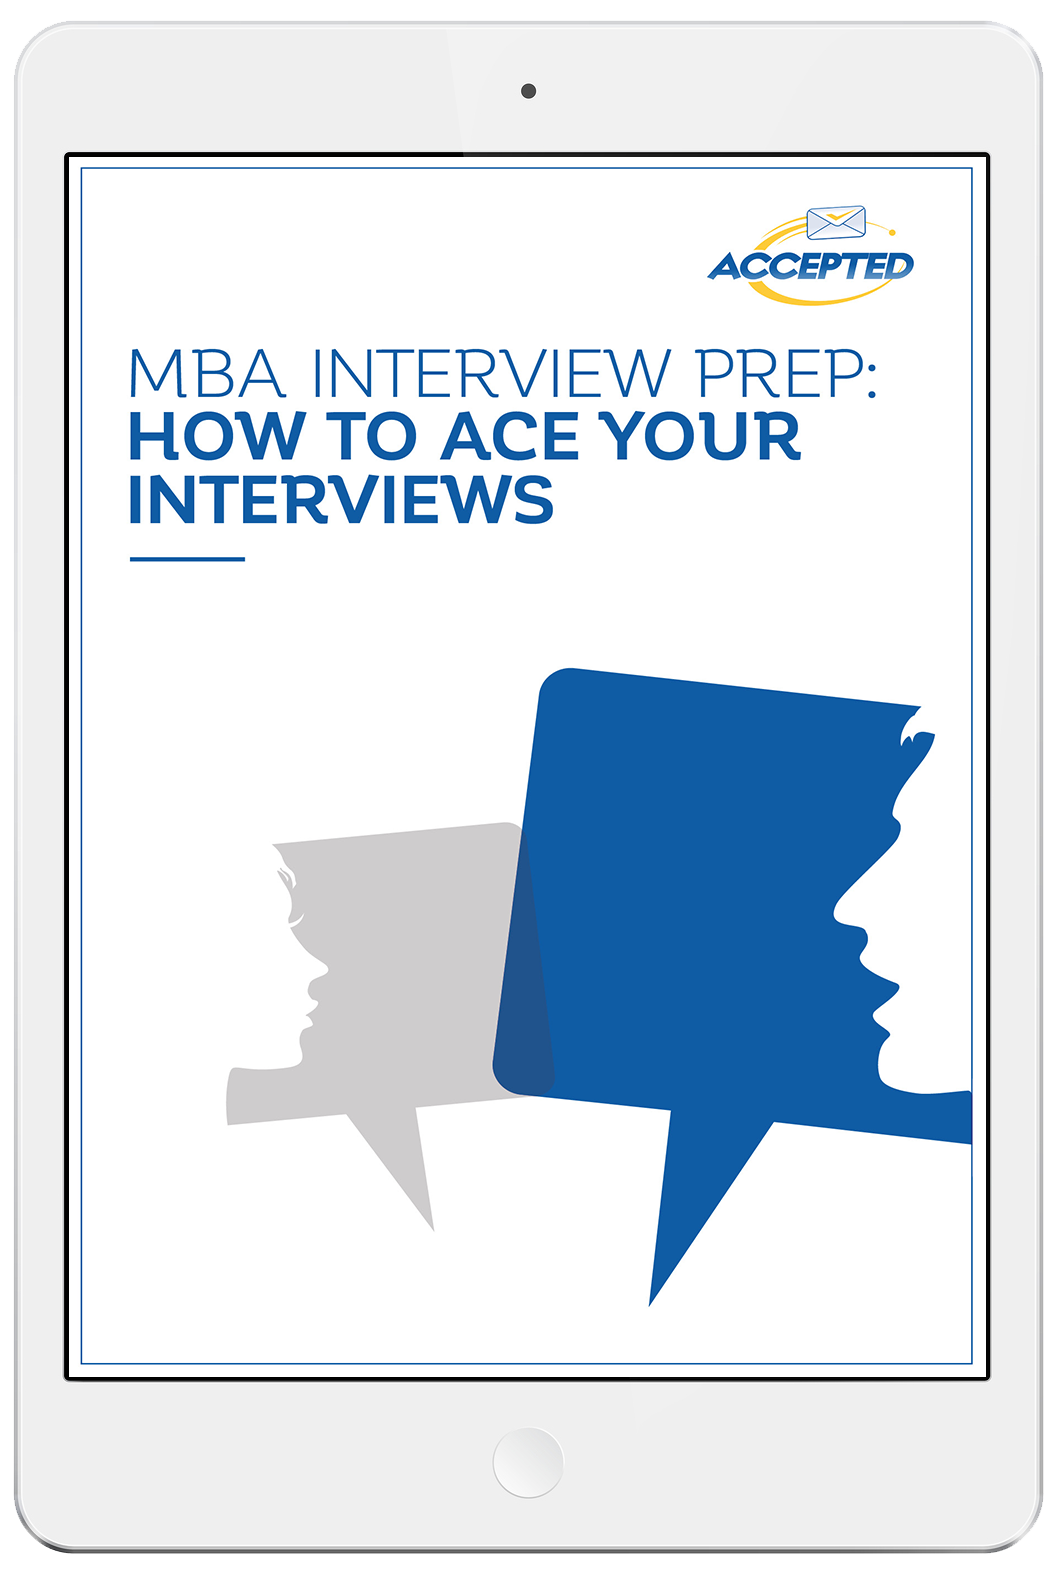 MBA Interview Prep: How to Ace Your Interviews